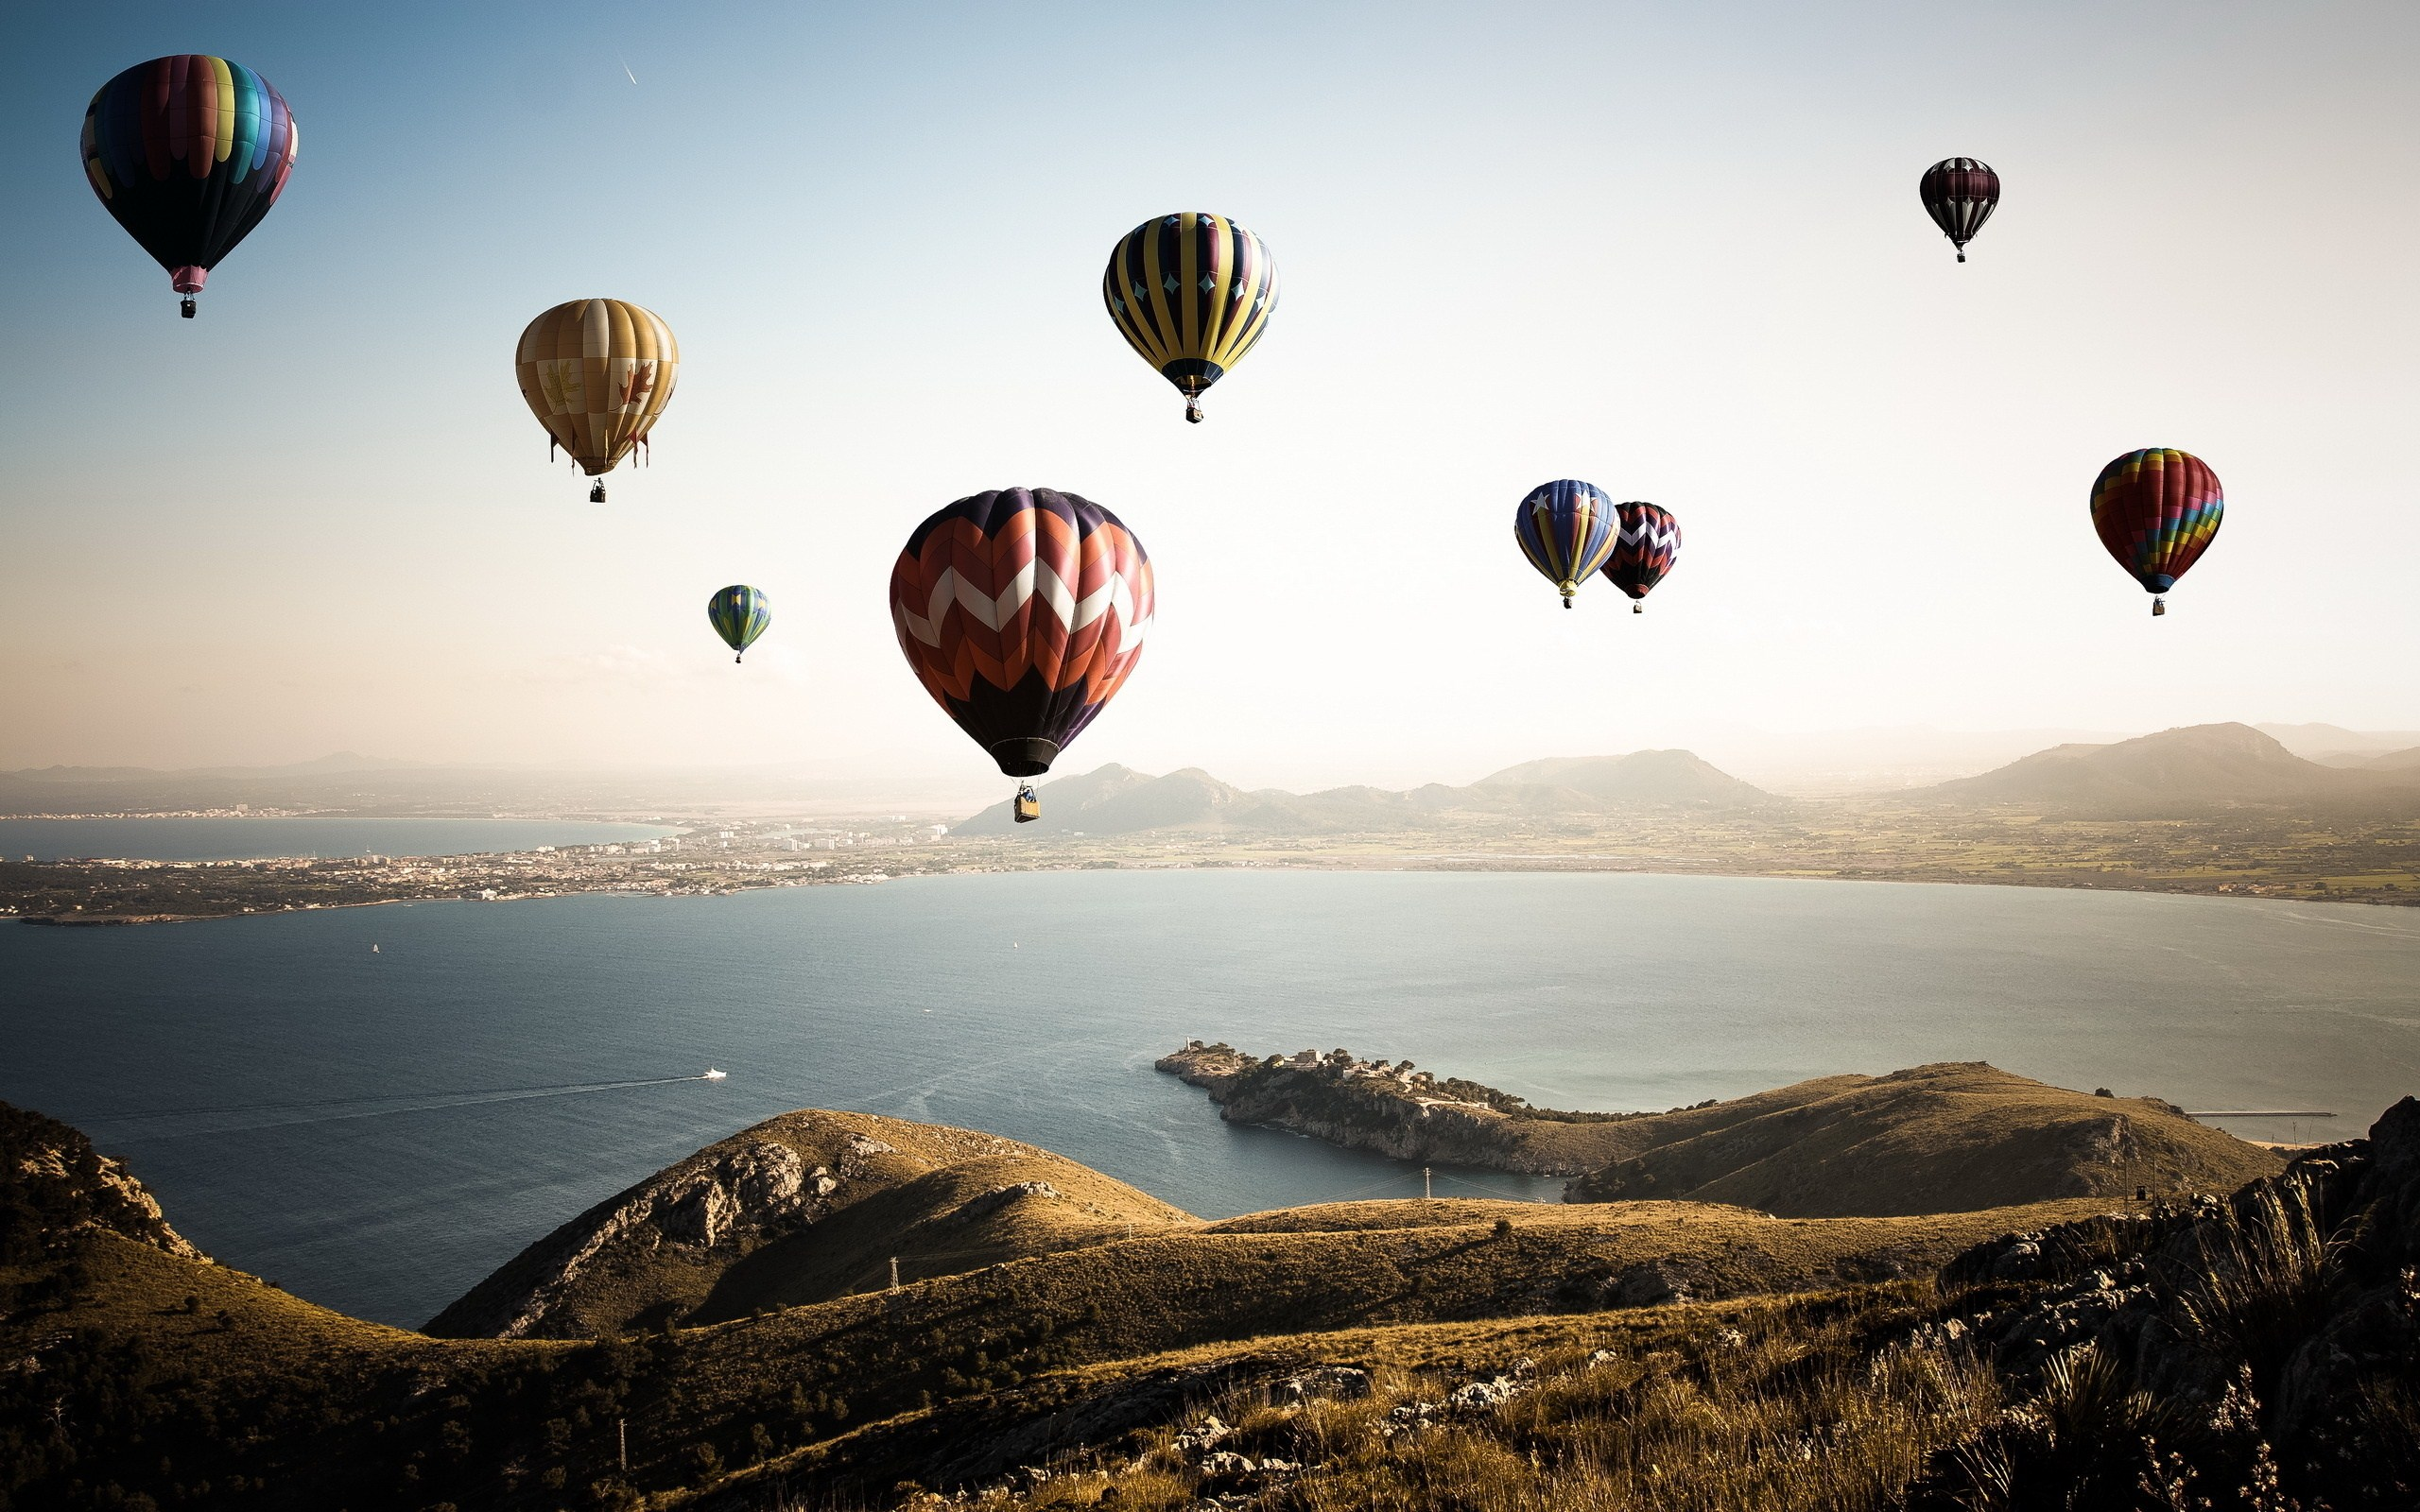 """Download the following Excellent Hot Air Balloon Wallpaper 47599 by clicking the orange button positioned underneath the """"Download Wallpaper"""" section."""